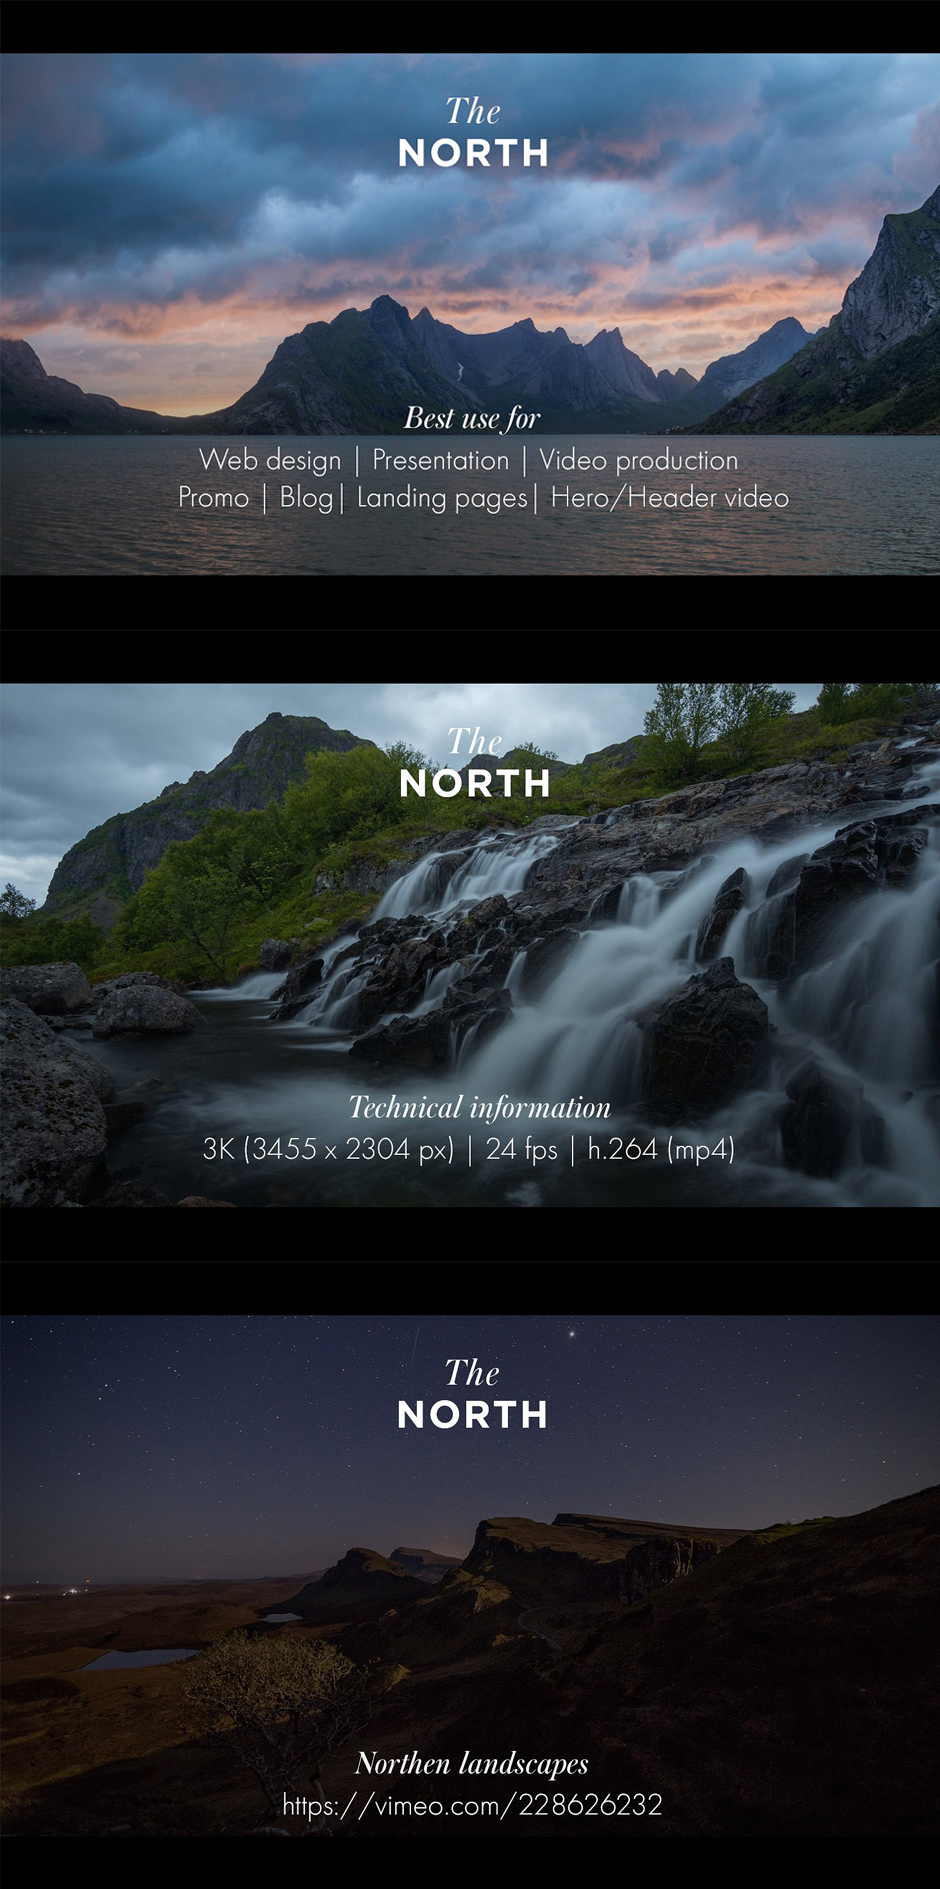 The North - Timelapse Videos